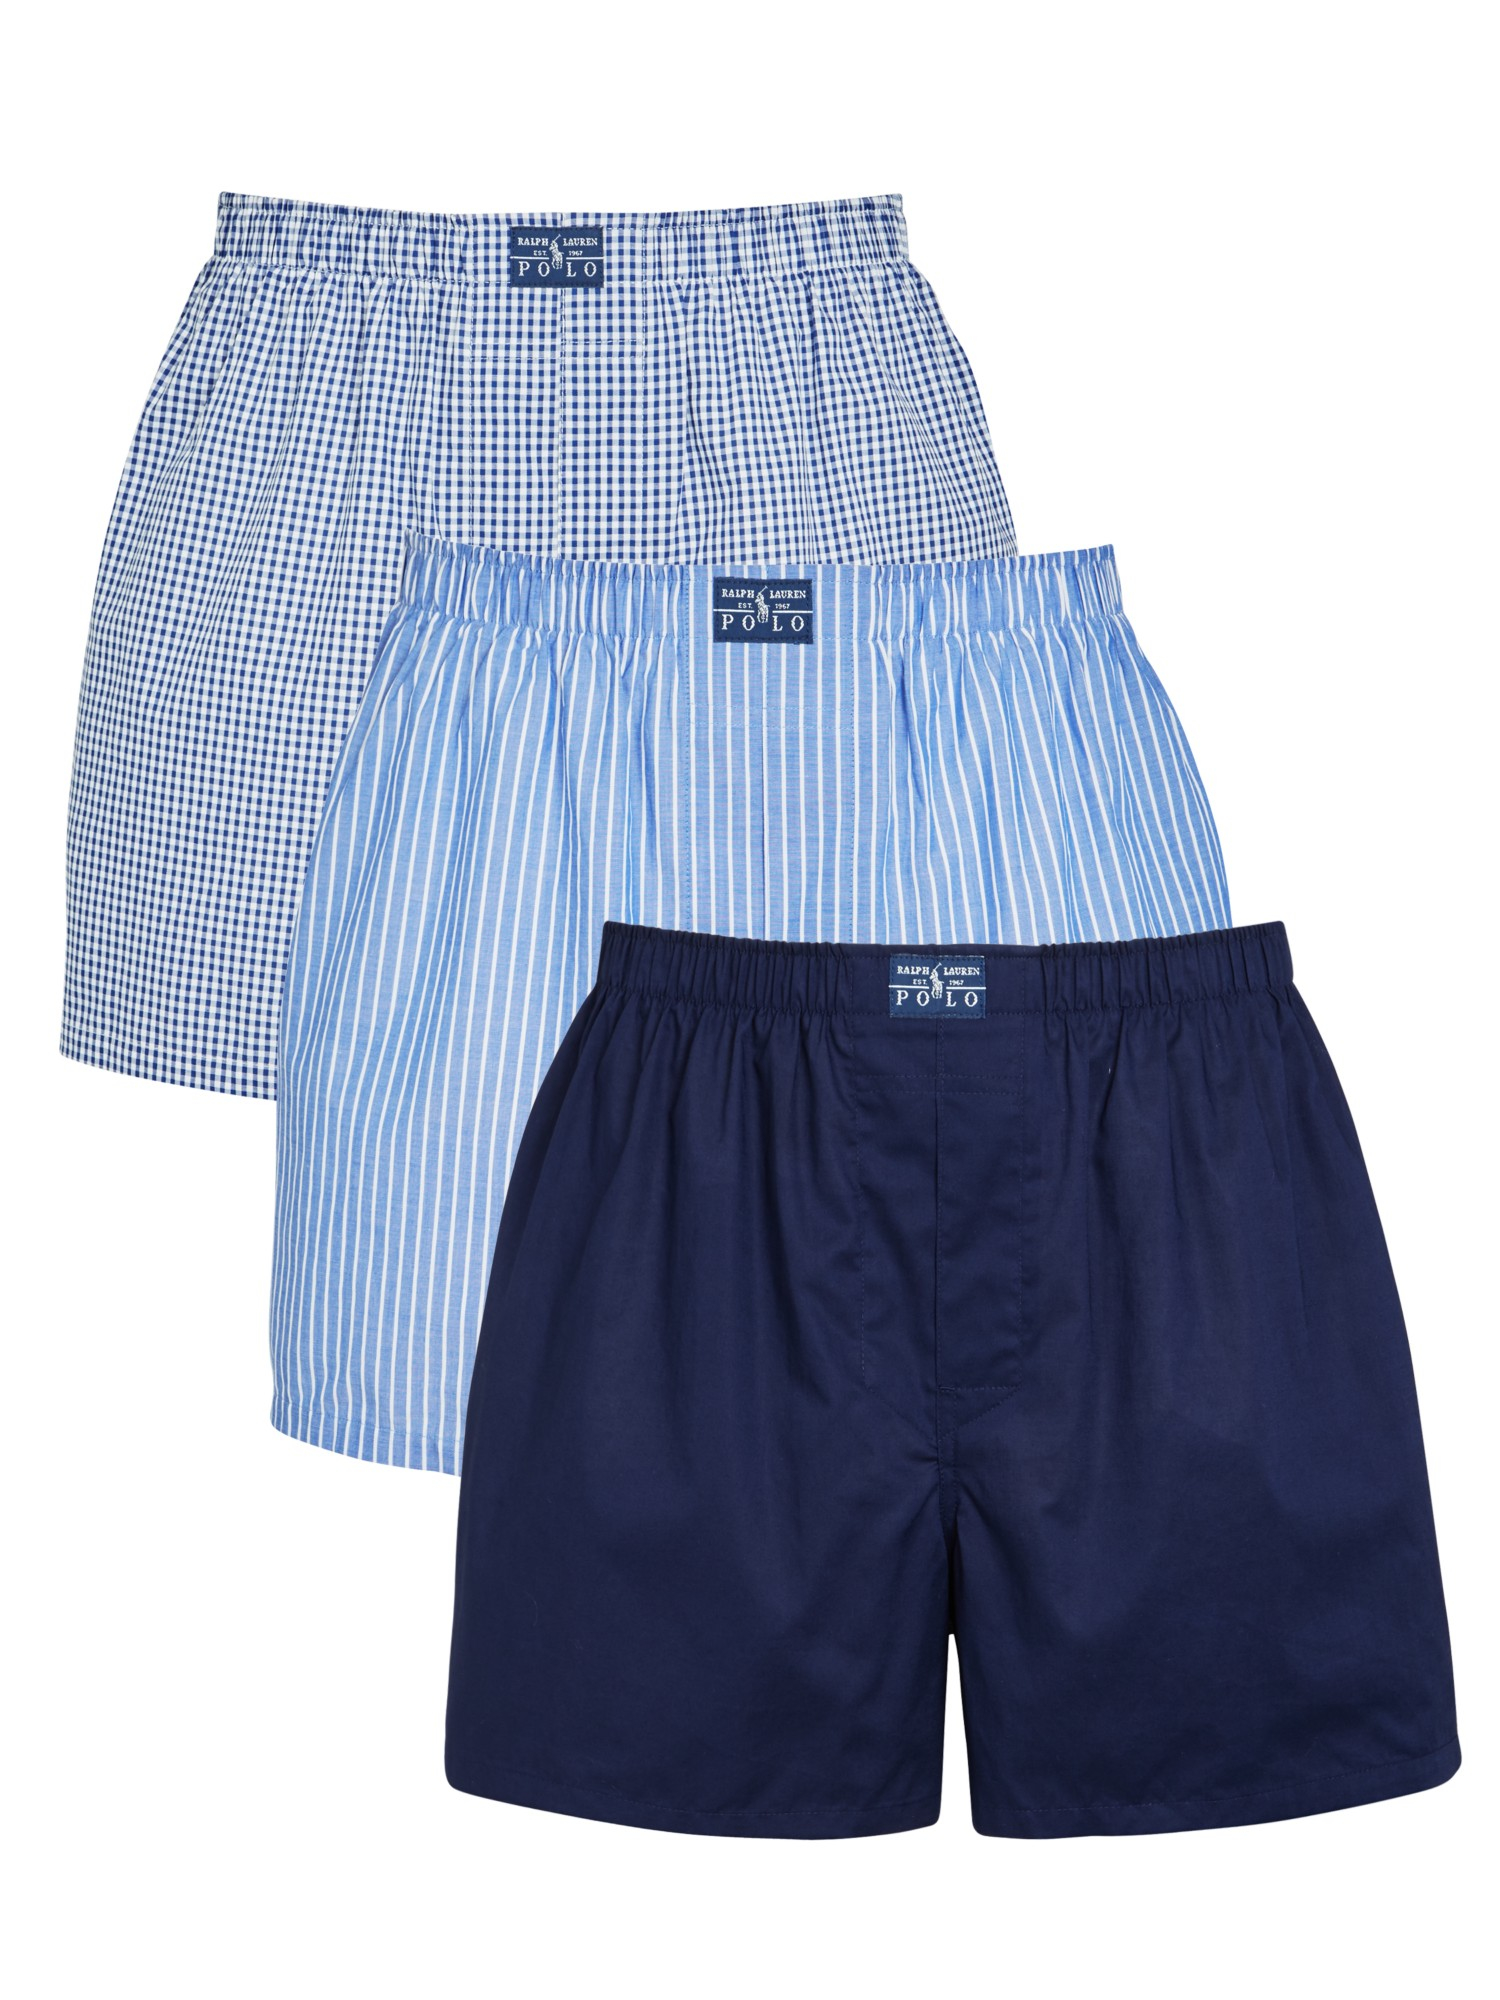 pink pony polo woven boxer shorts in blue for men lyst. Black Bedroom Furniture Sets. Home Design Ideas